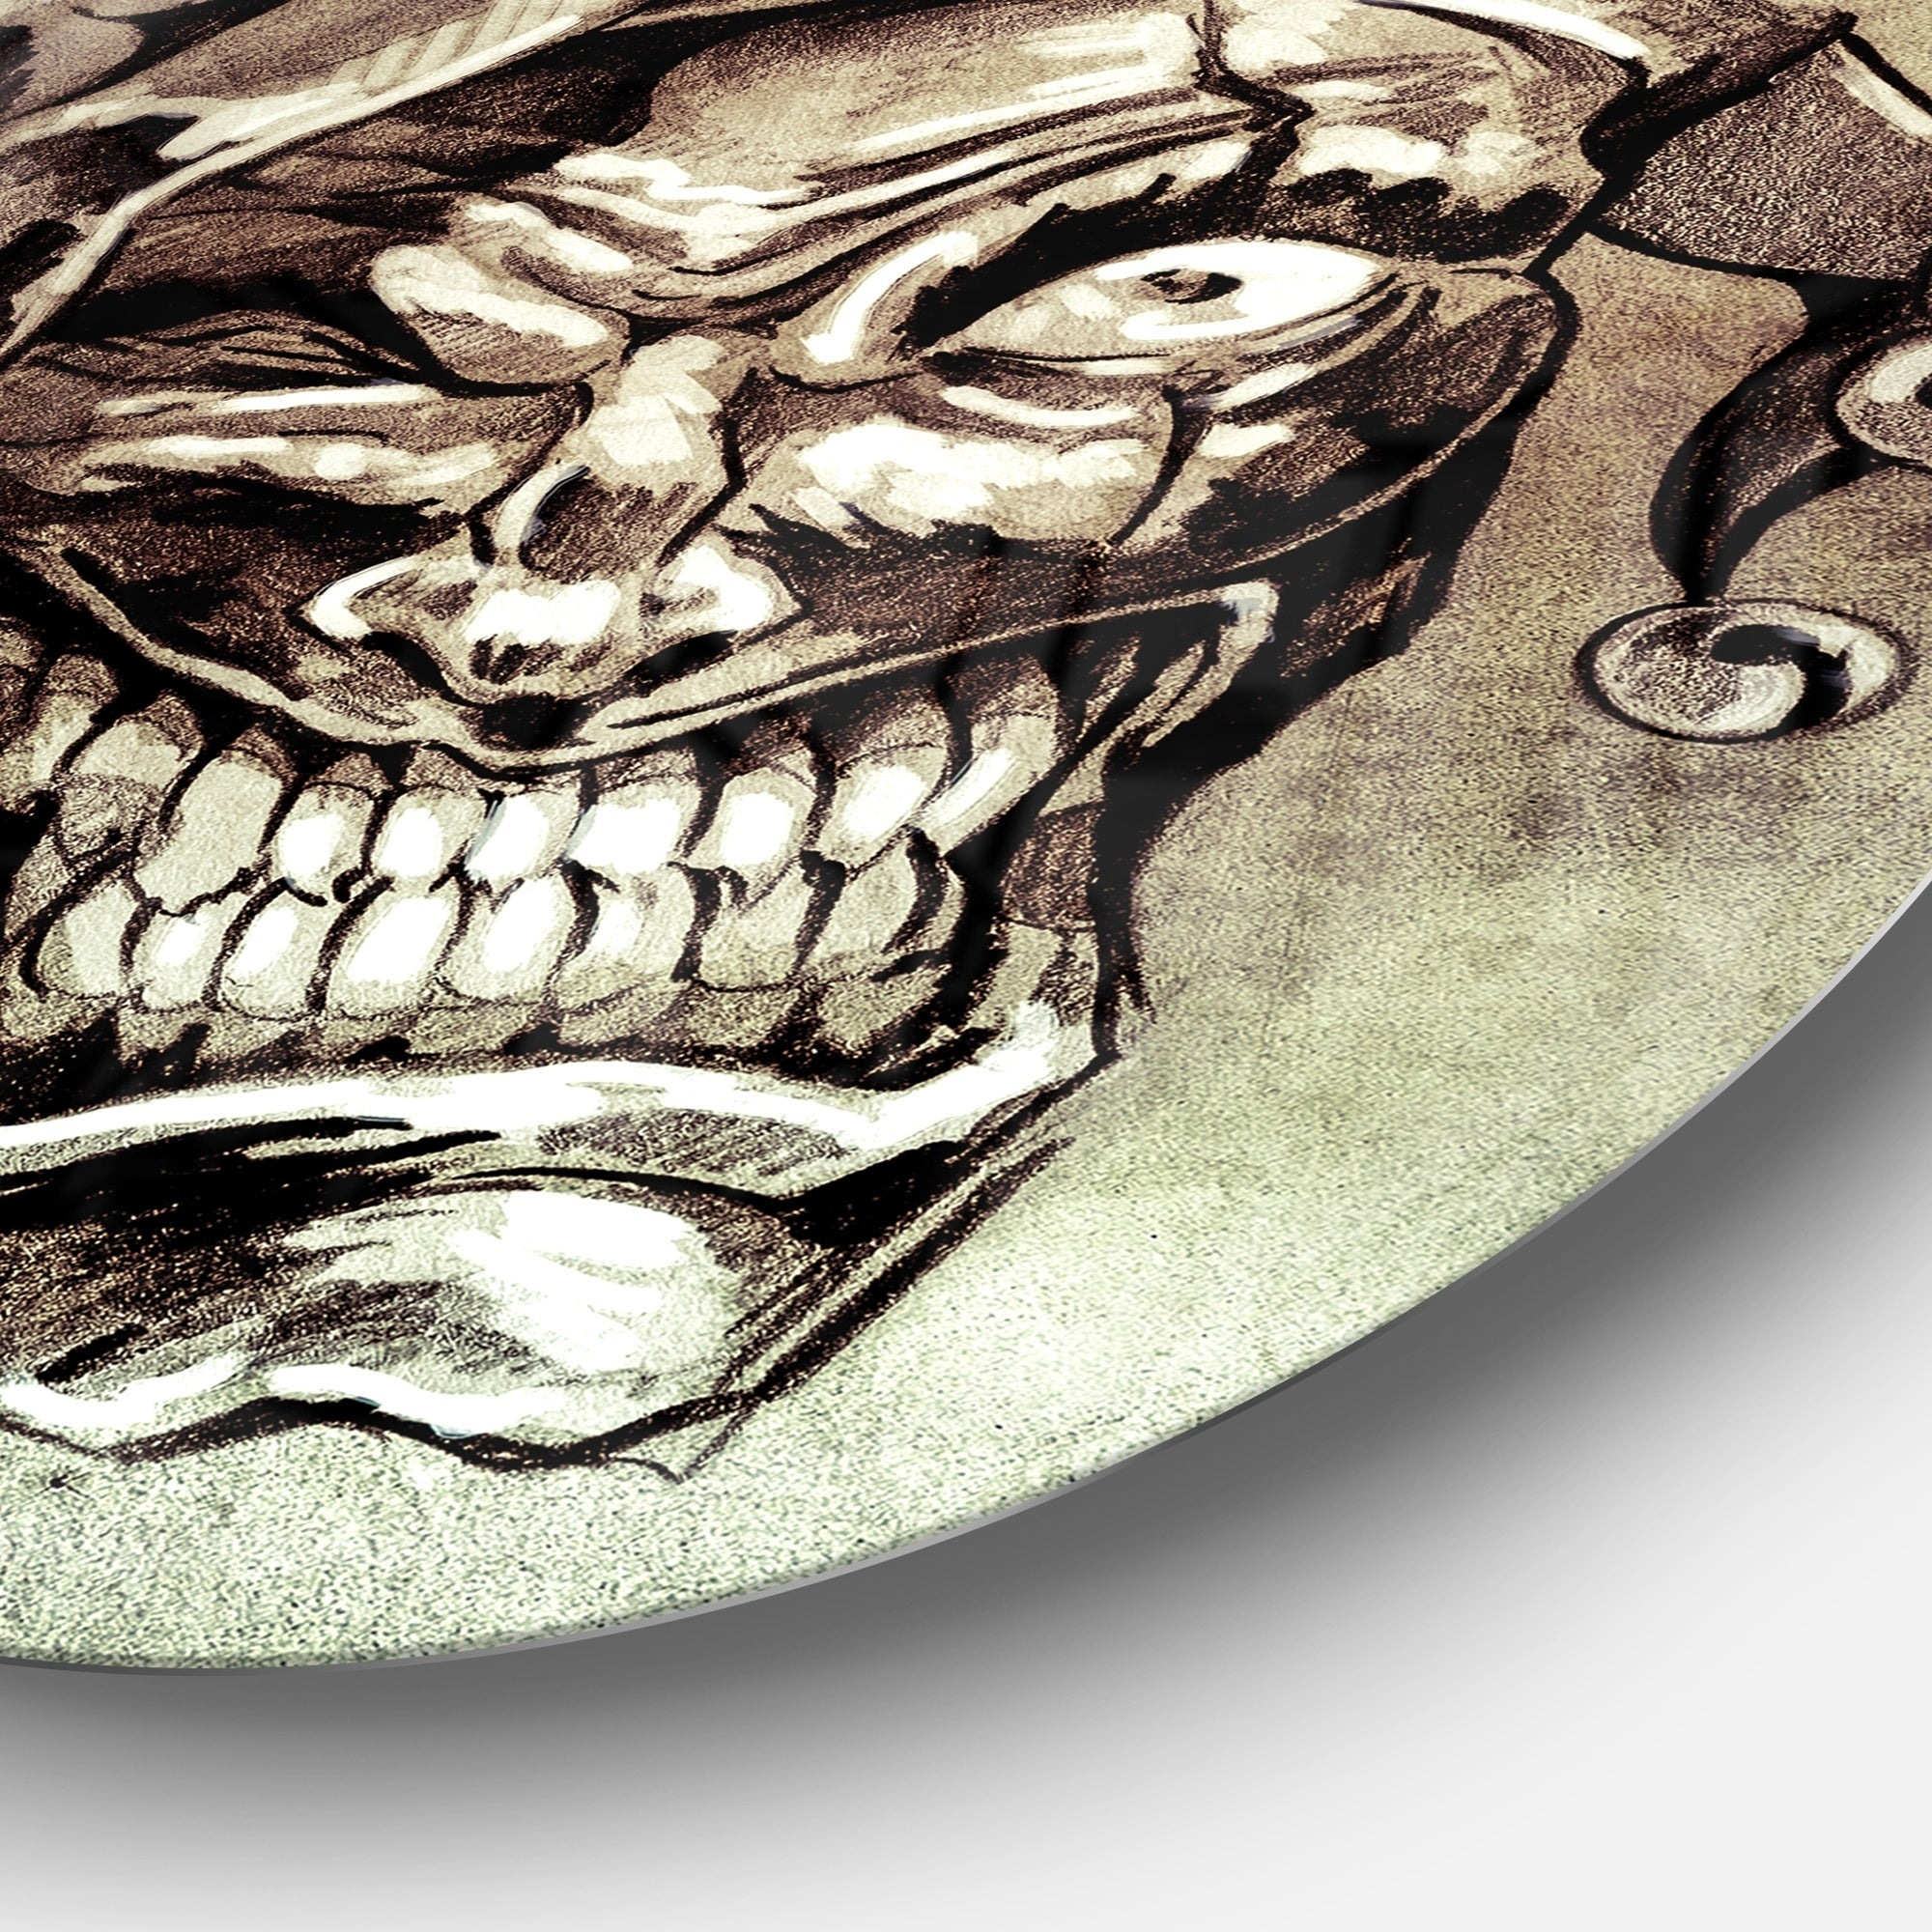 Shop For Designart Fantasy Clown Joker Tattoo Sketch Digital Art Round Wall Art Get Free Delivery On Everything At Overstock Your Online Art Gallery Shop Get 5 In Rewards With Club O 14263115